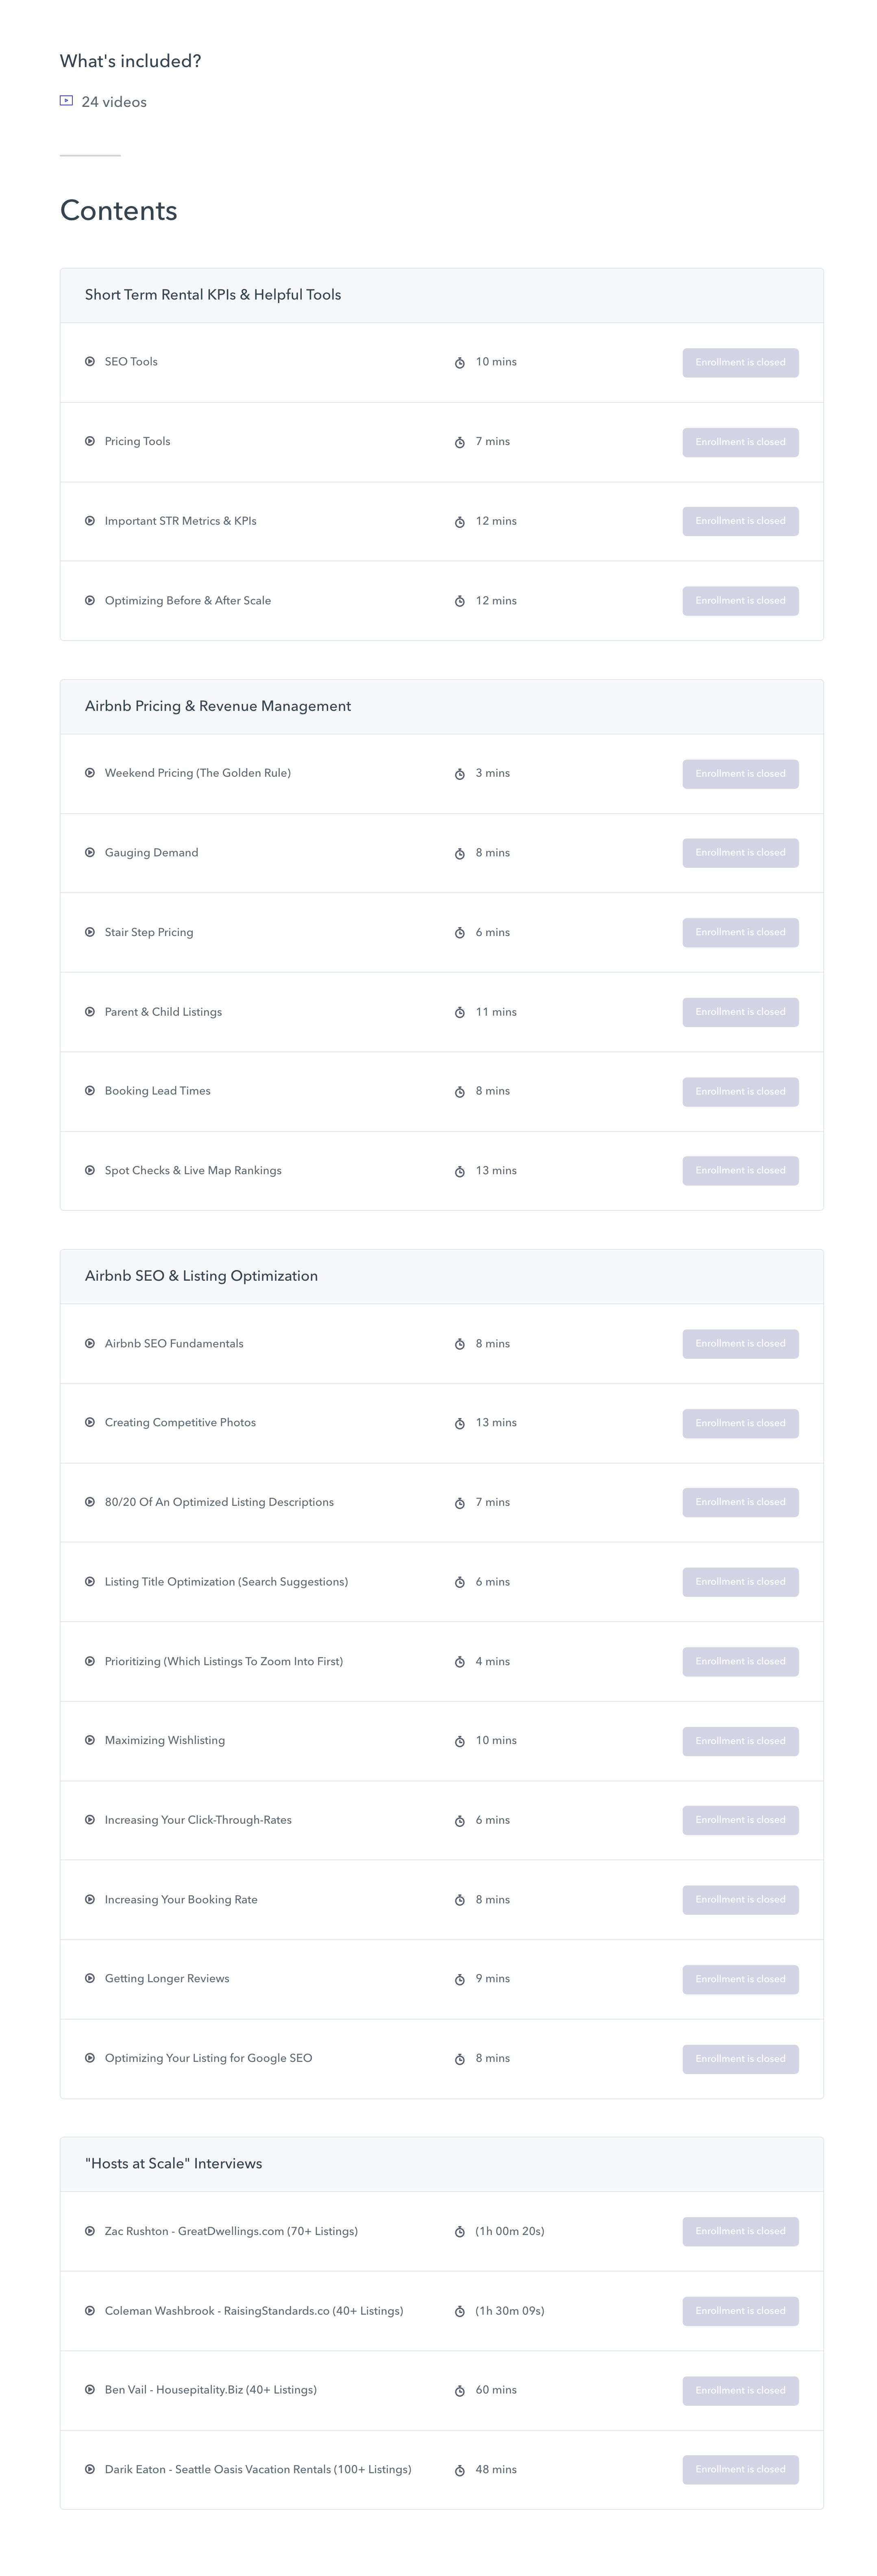 Airbnb SEO and Pricing Course Syllabus (Crop)